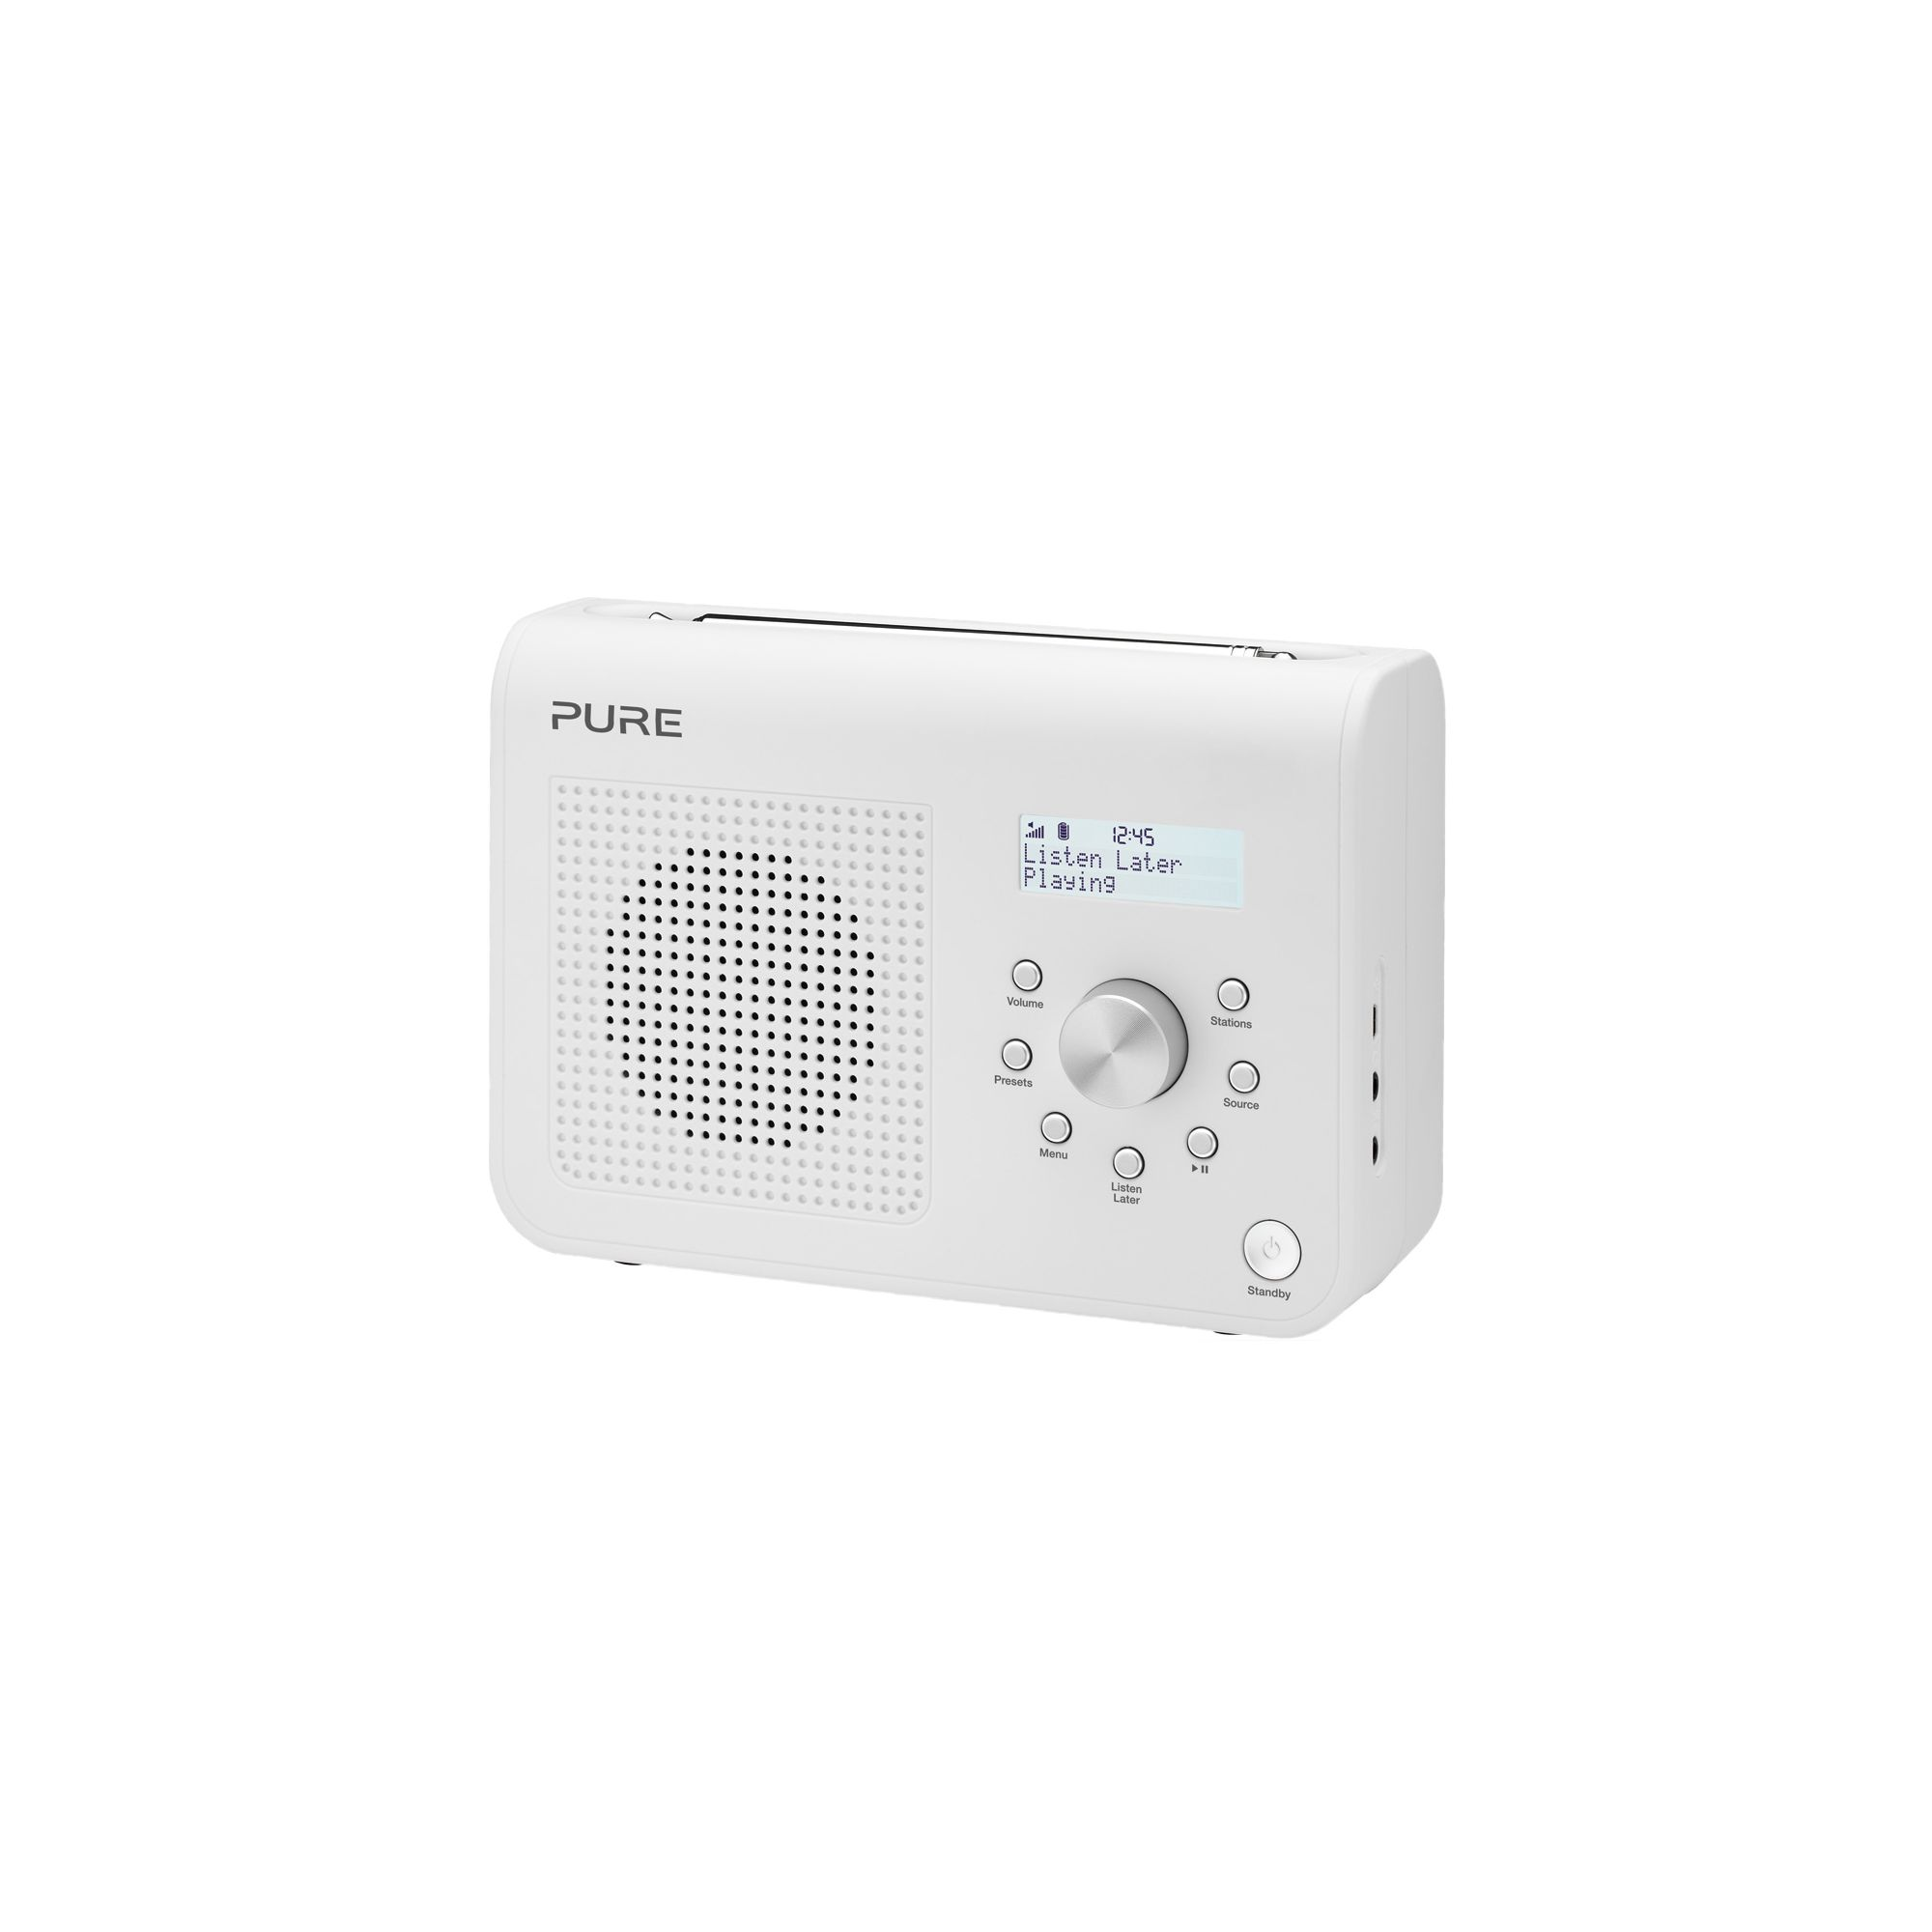 PURE ONE CLASSIC S2 DAB/FM ALARM RADIO (WHITE)